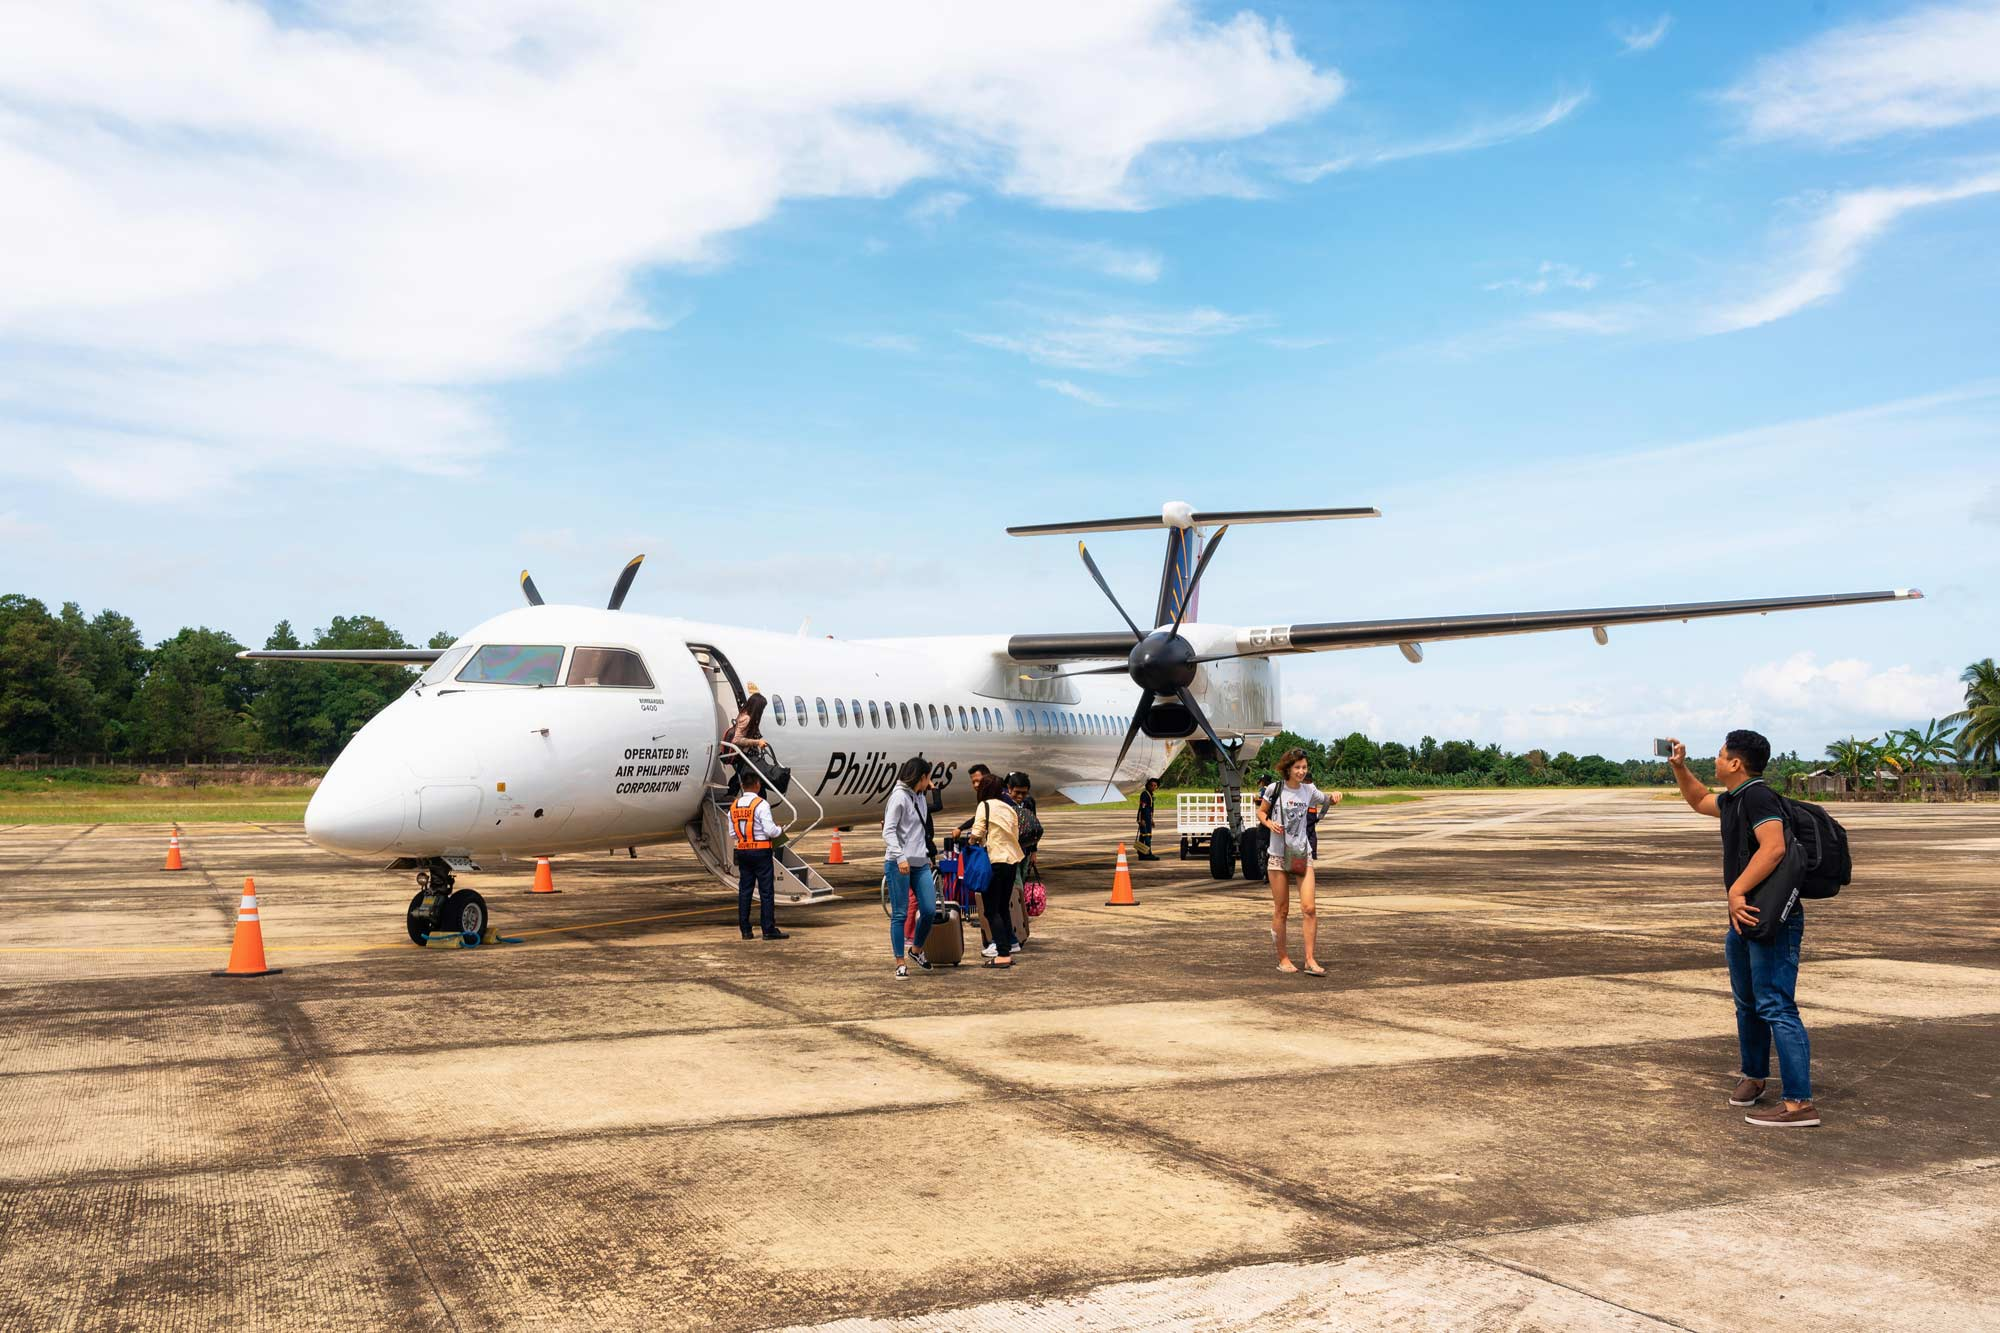 TrueNoord delivers second Dash 8-400 to Philippine Airlines